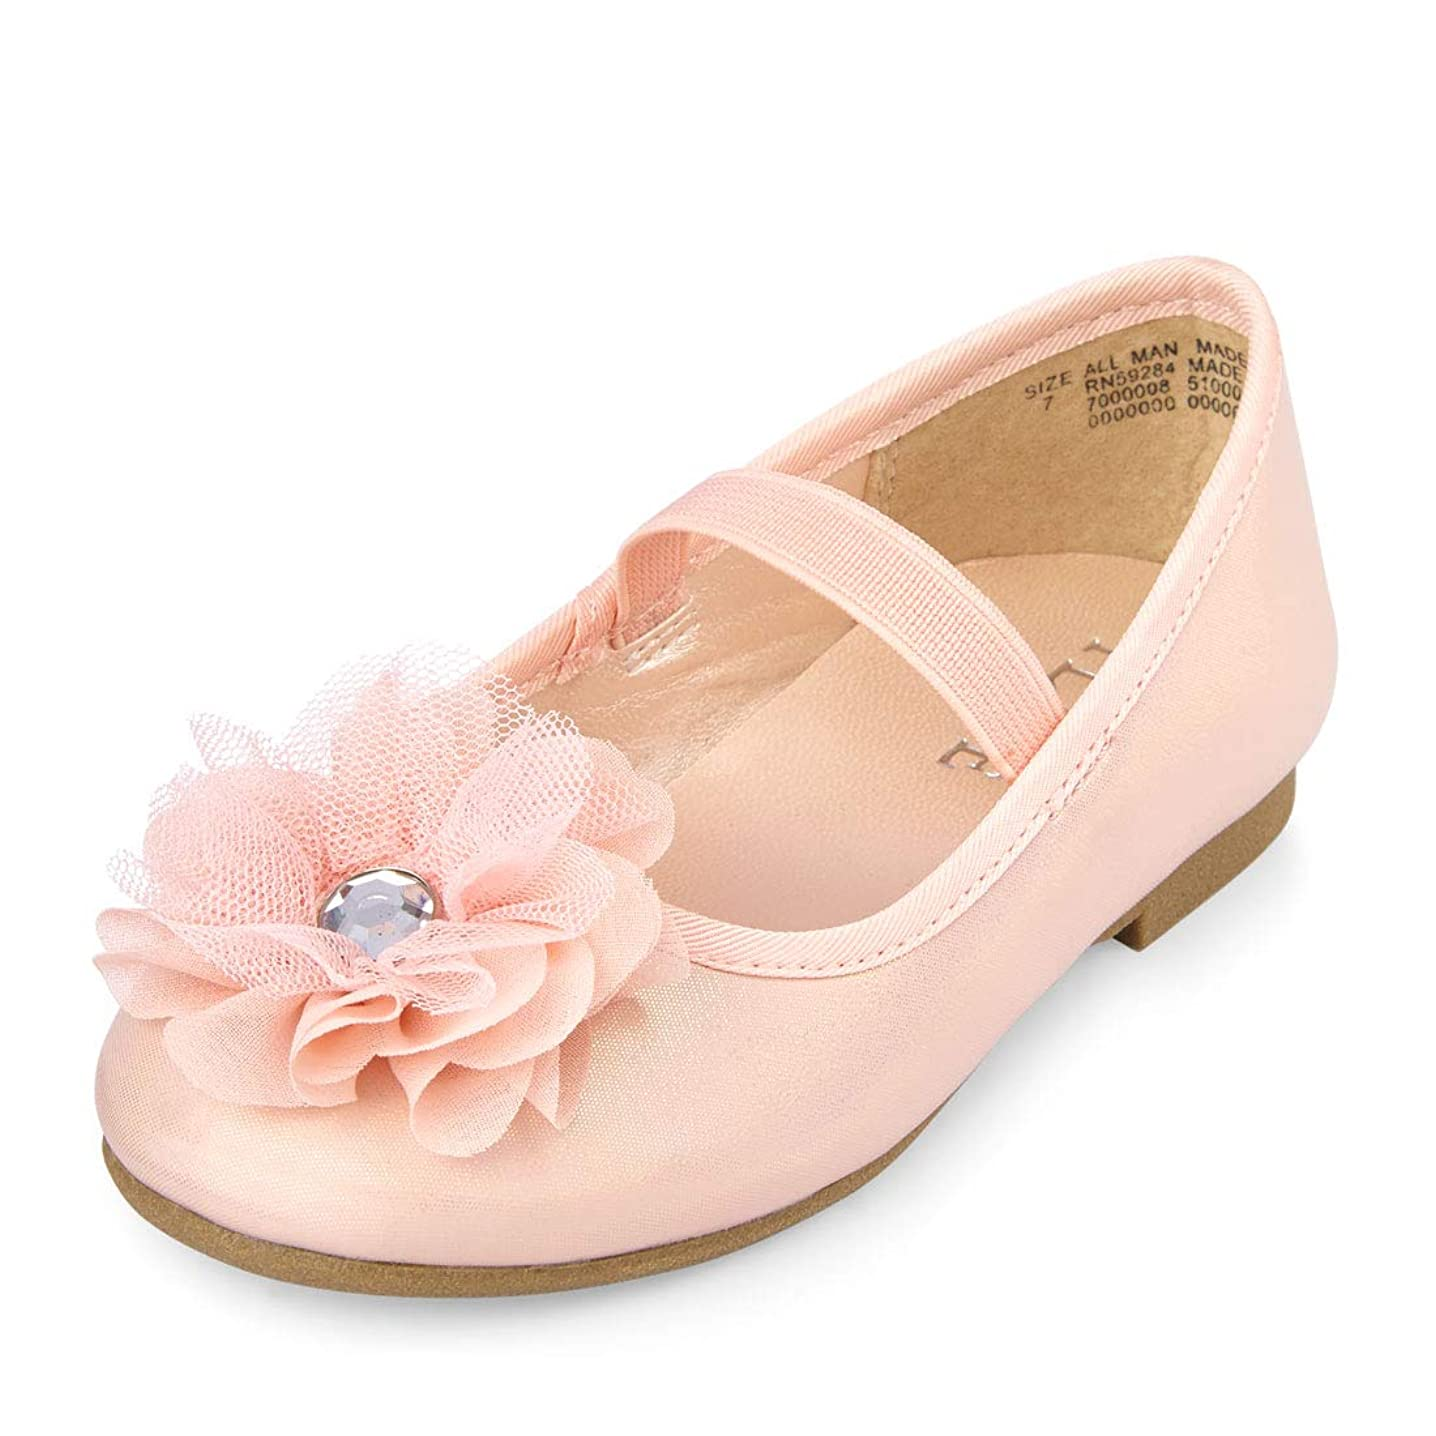 The Children's Place Kids' Strap Ballet Flat